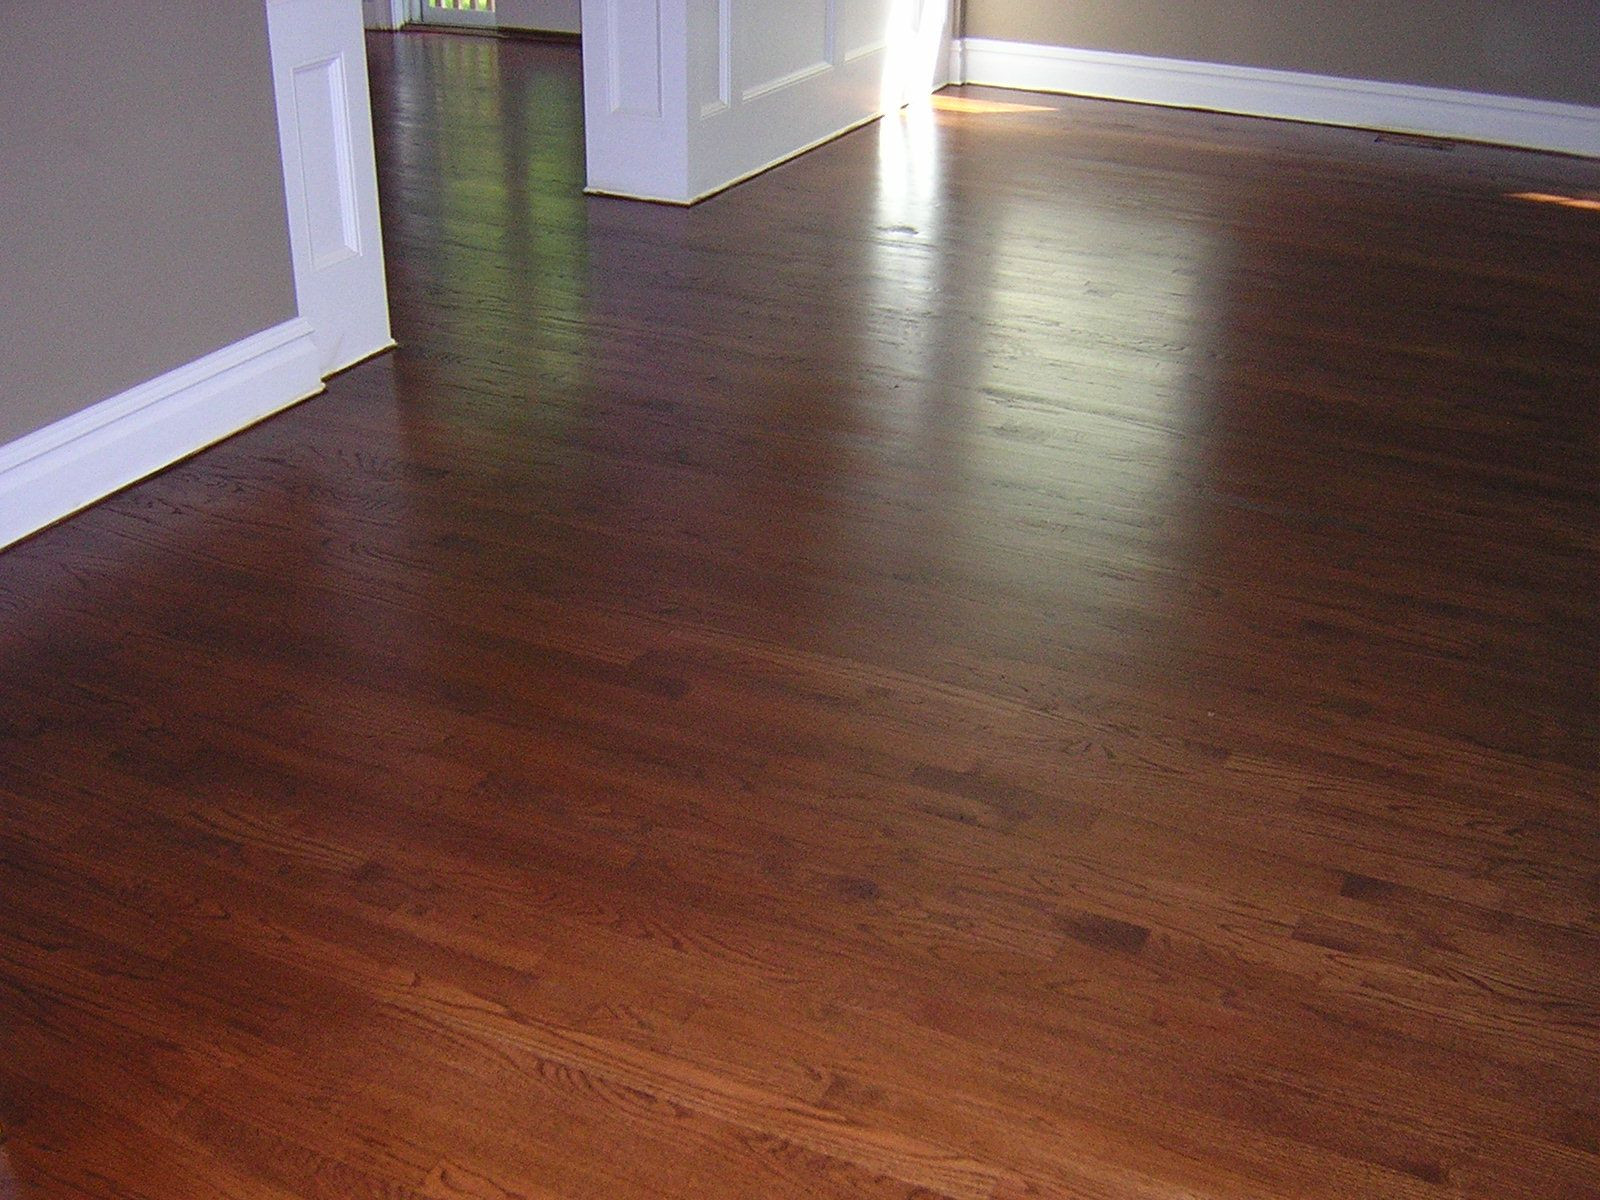 Pallmann Hardwood Floor Cleaning Kit Of English Chestnut Stain On White Oak Stylish Floors N More Inc Intended for English Chestnut Stain On White Oak Stylish Floors N More Inc Gallery Ii